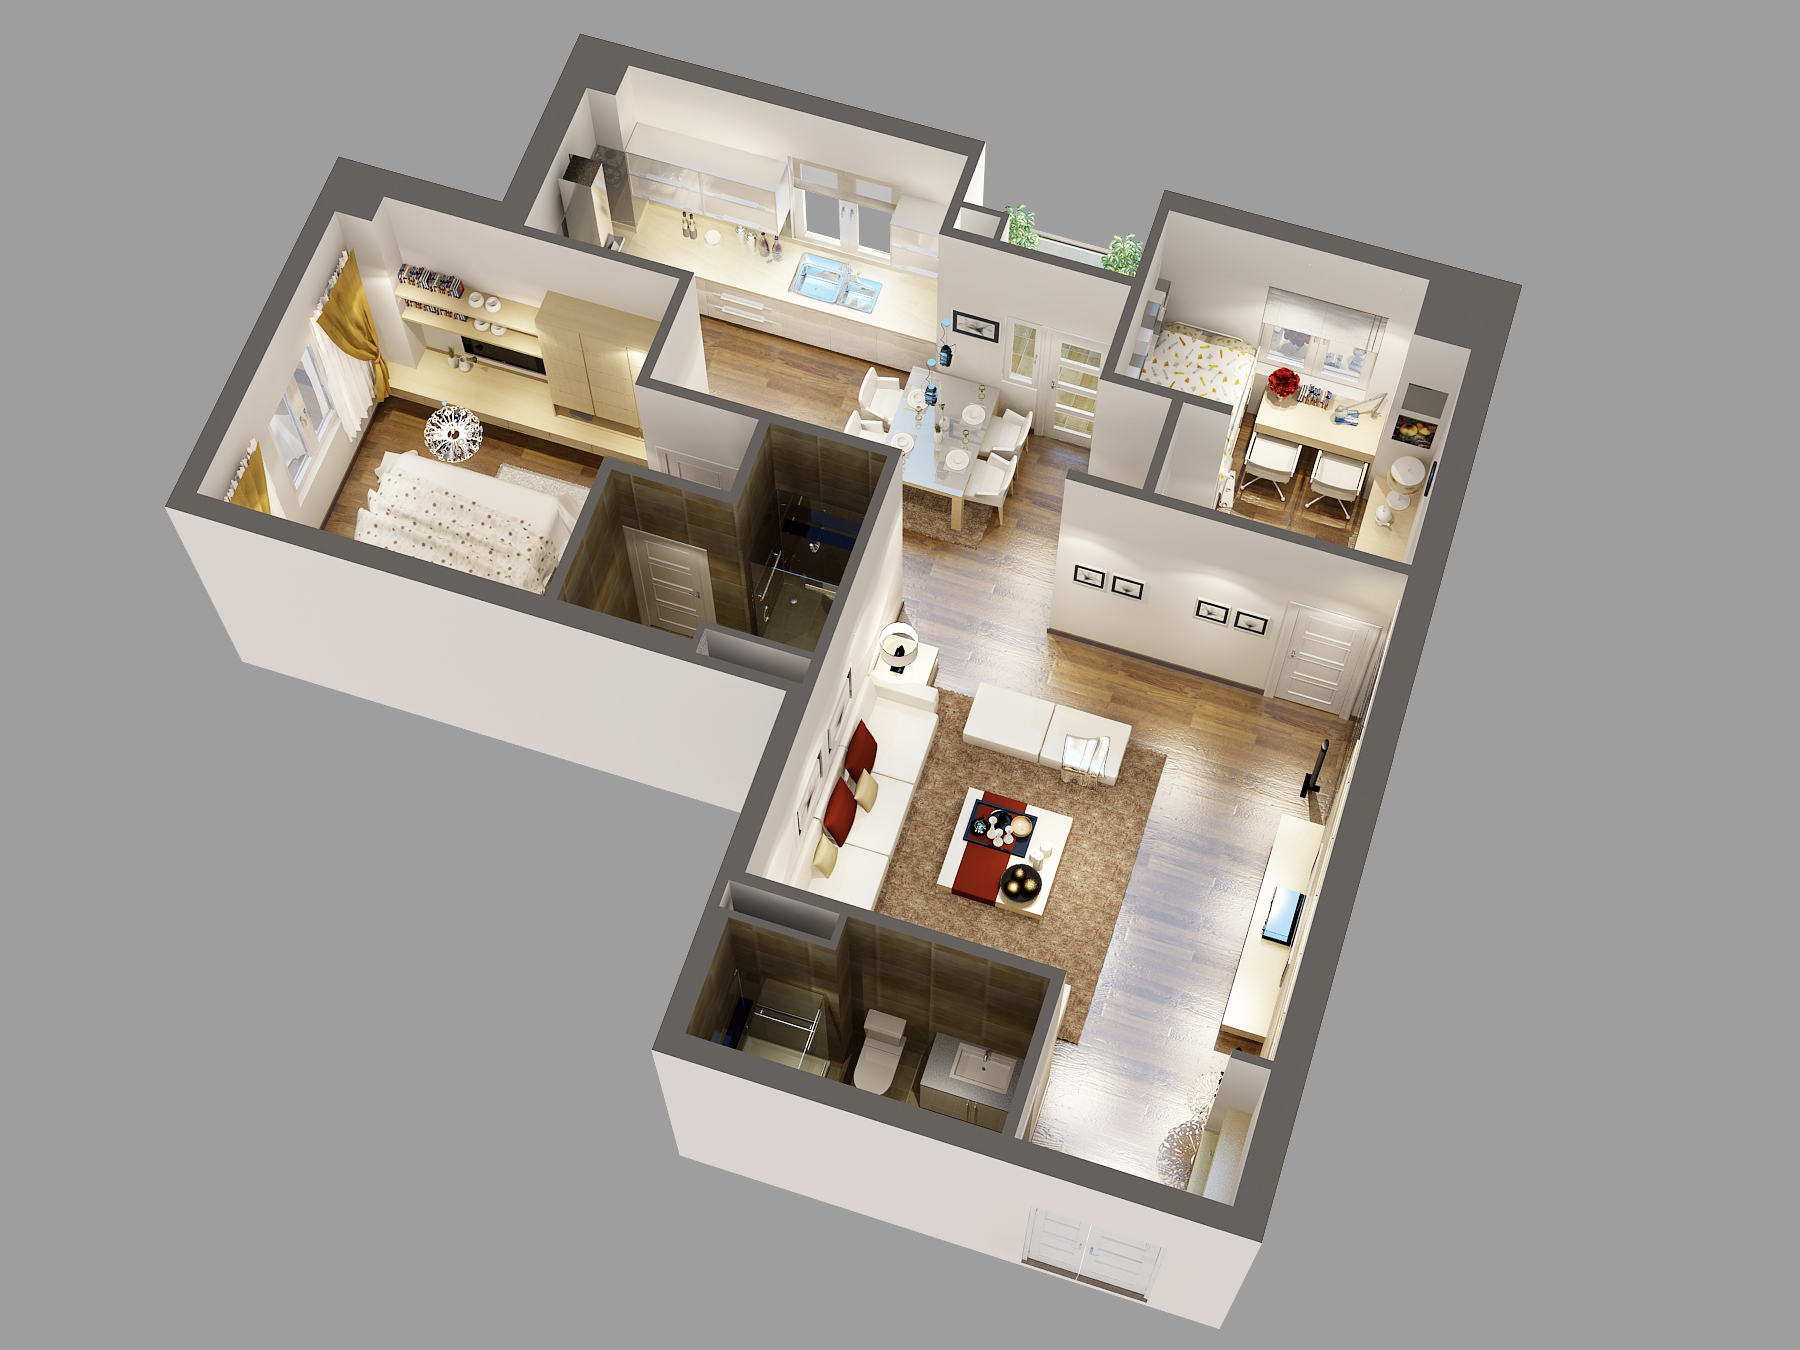 Detailed house cutaway 3d model 3d model max for The model apartment